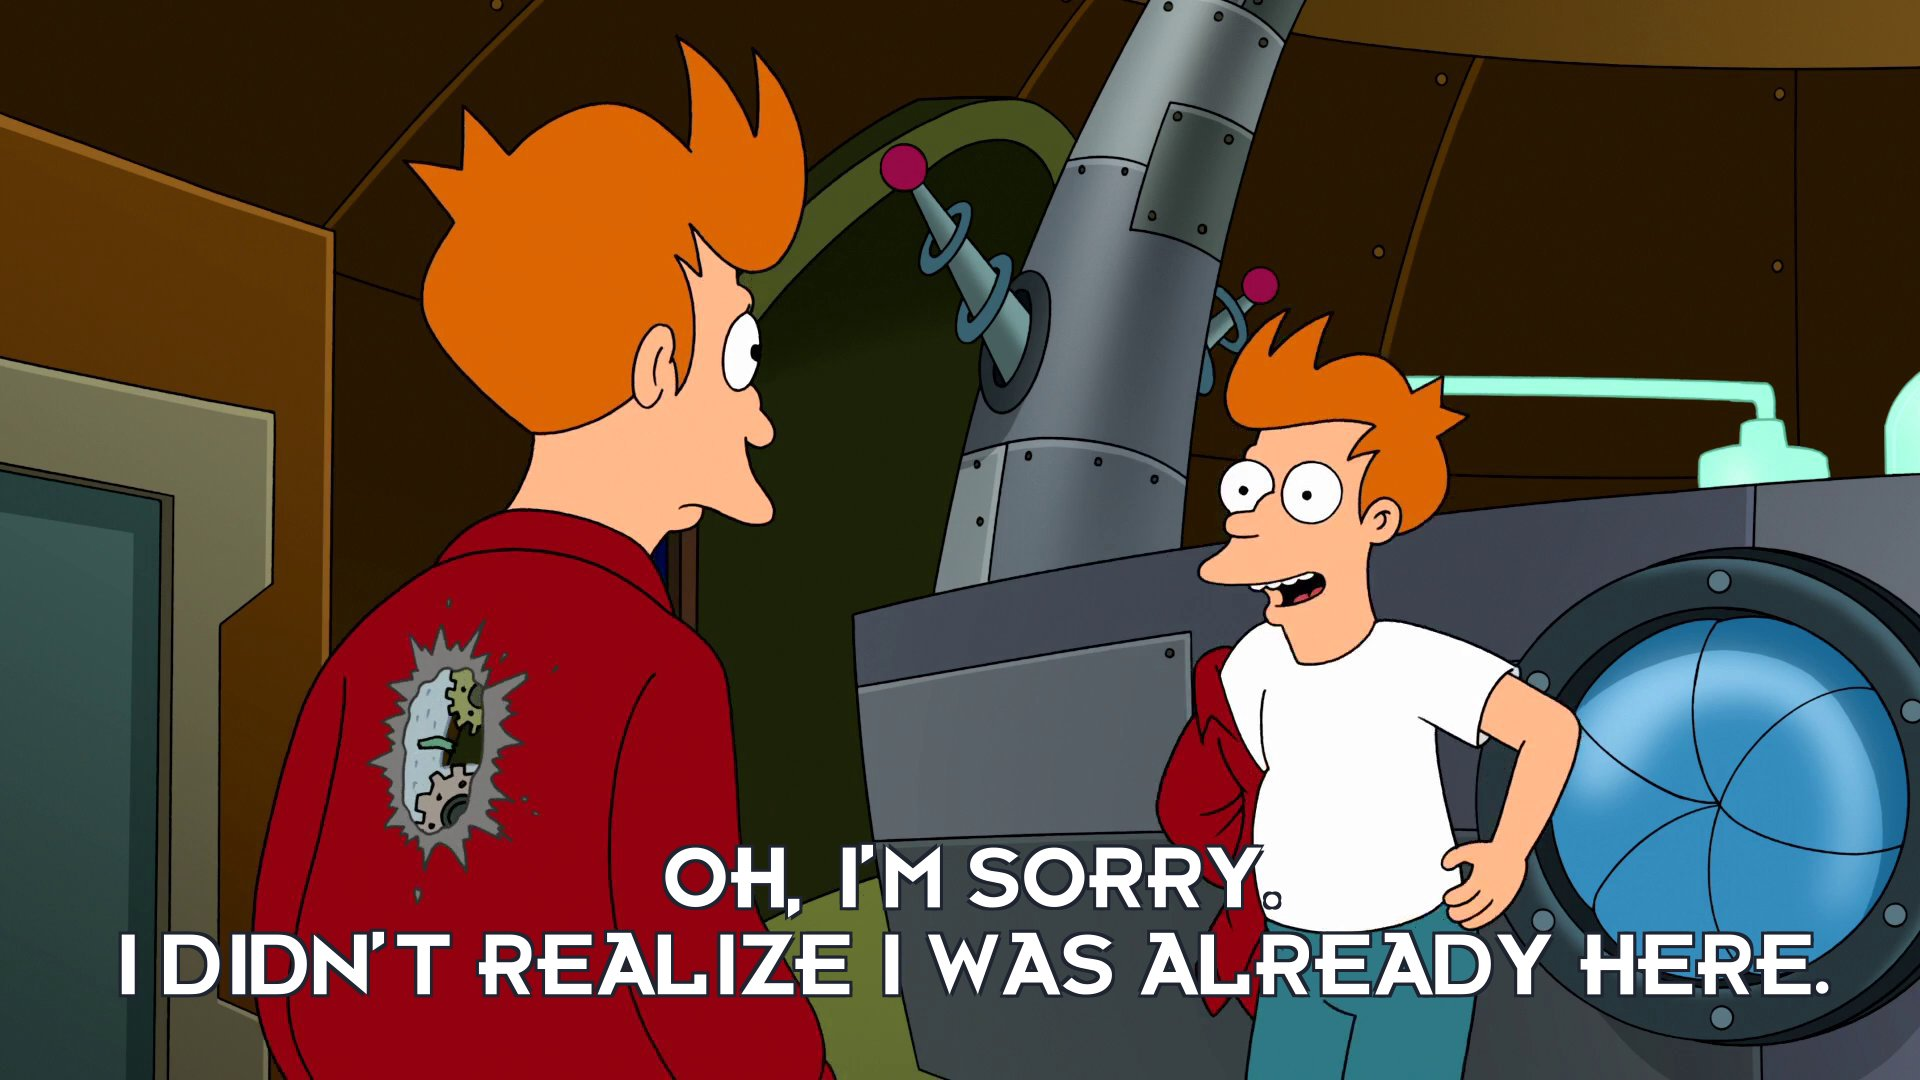 Philip J Fry: Oh, I'm sorry. I didn't realize I was already here.